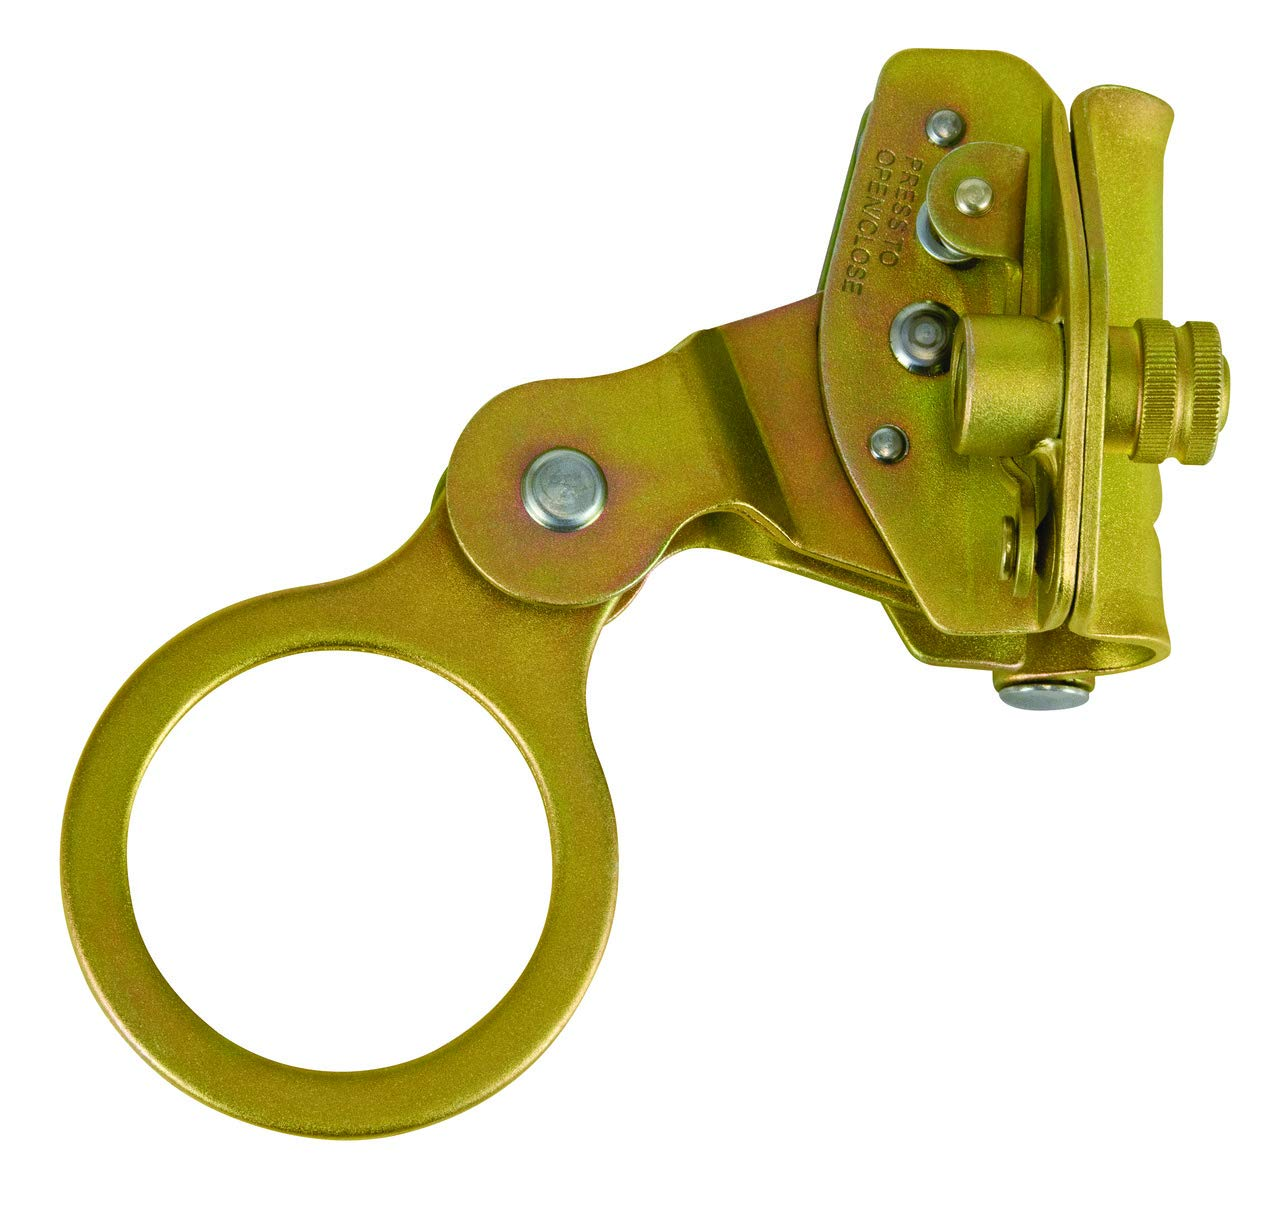 FallTech 7479 Hinged Self-Tracking 5/8-Inch Rope Grab with 2-Inch Connecting Eye